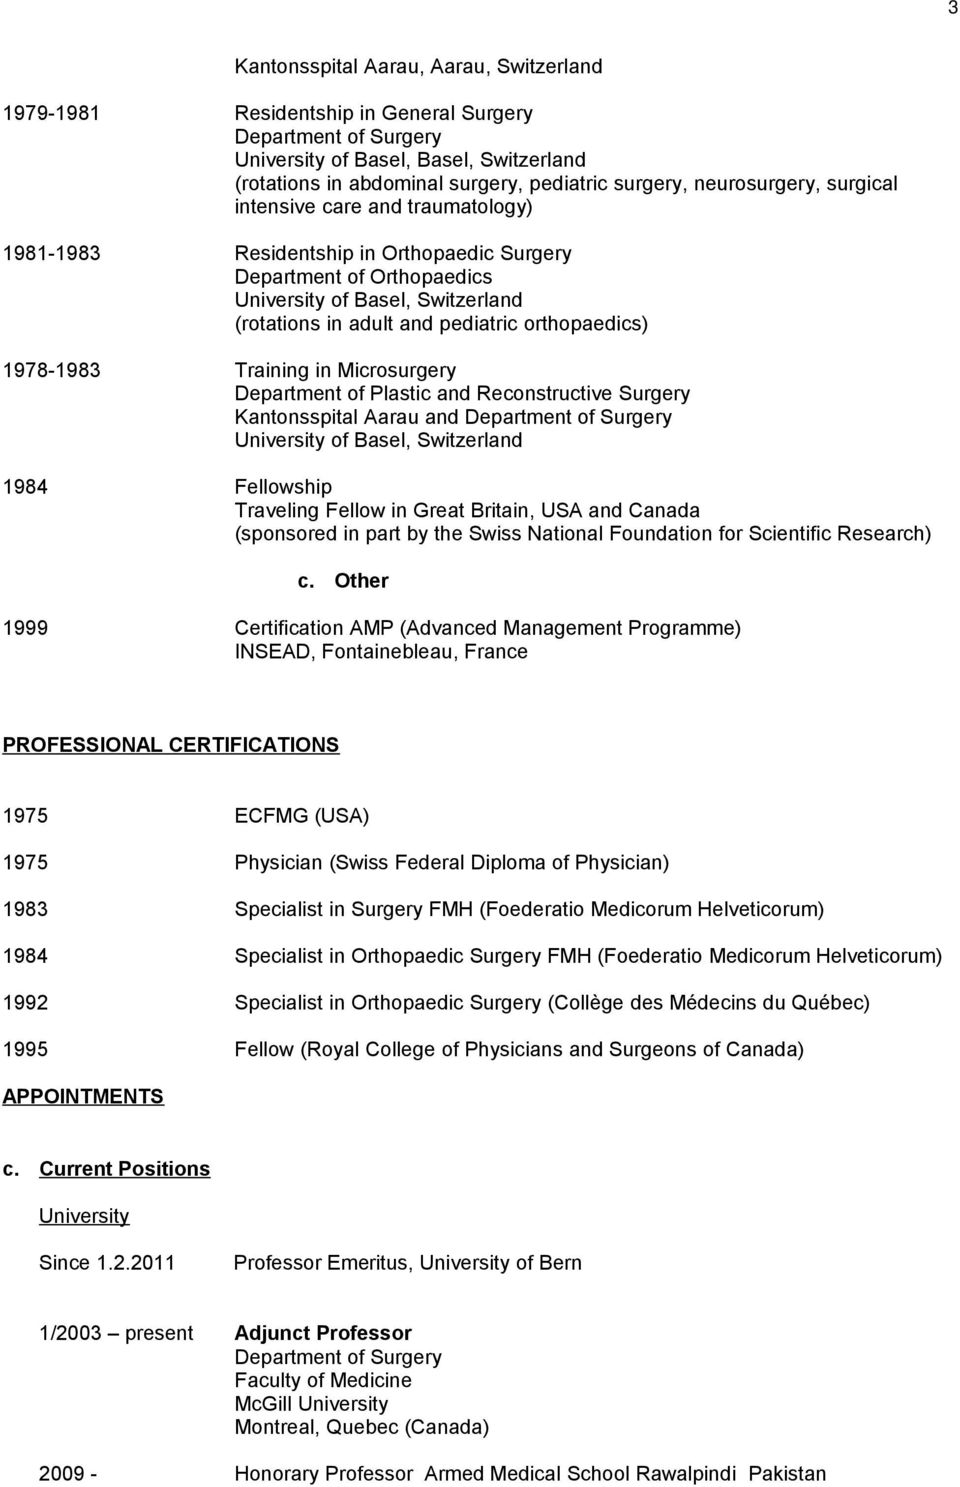 CURRICULUM VITAE  Institute for Evaluative Research in Orthopaedic